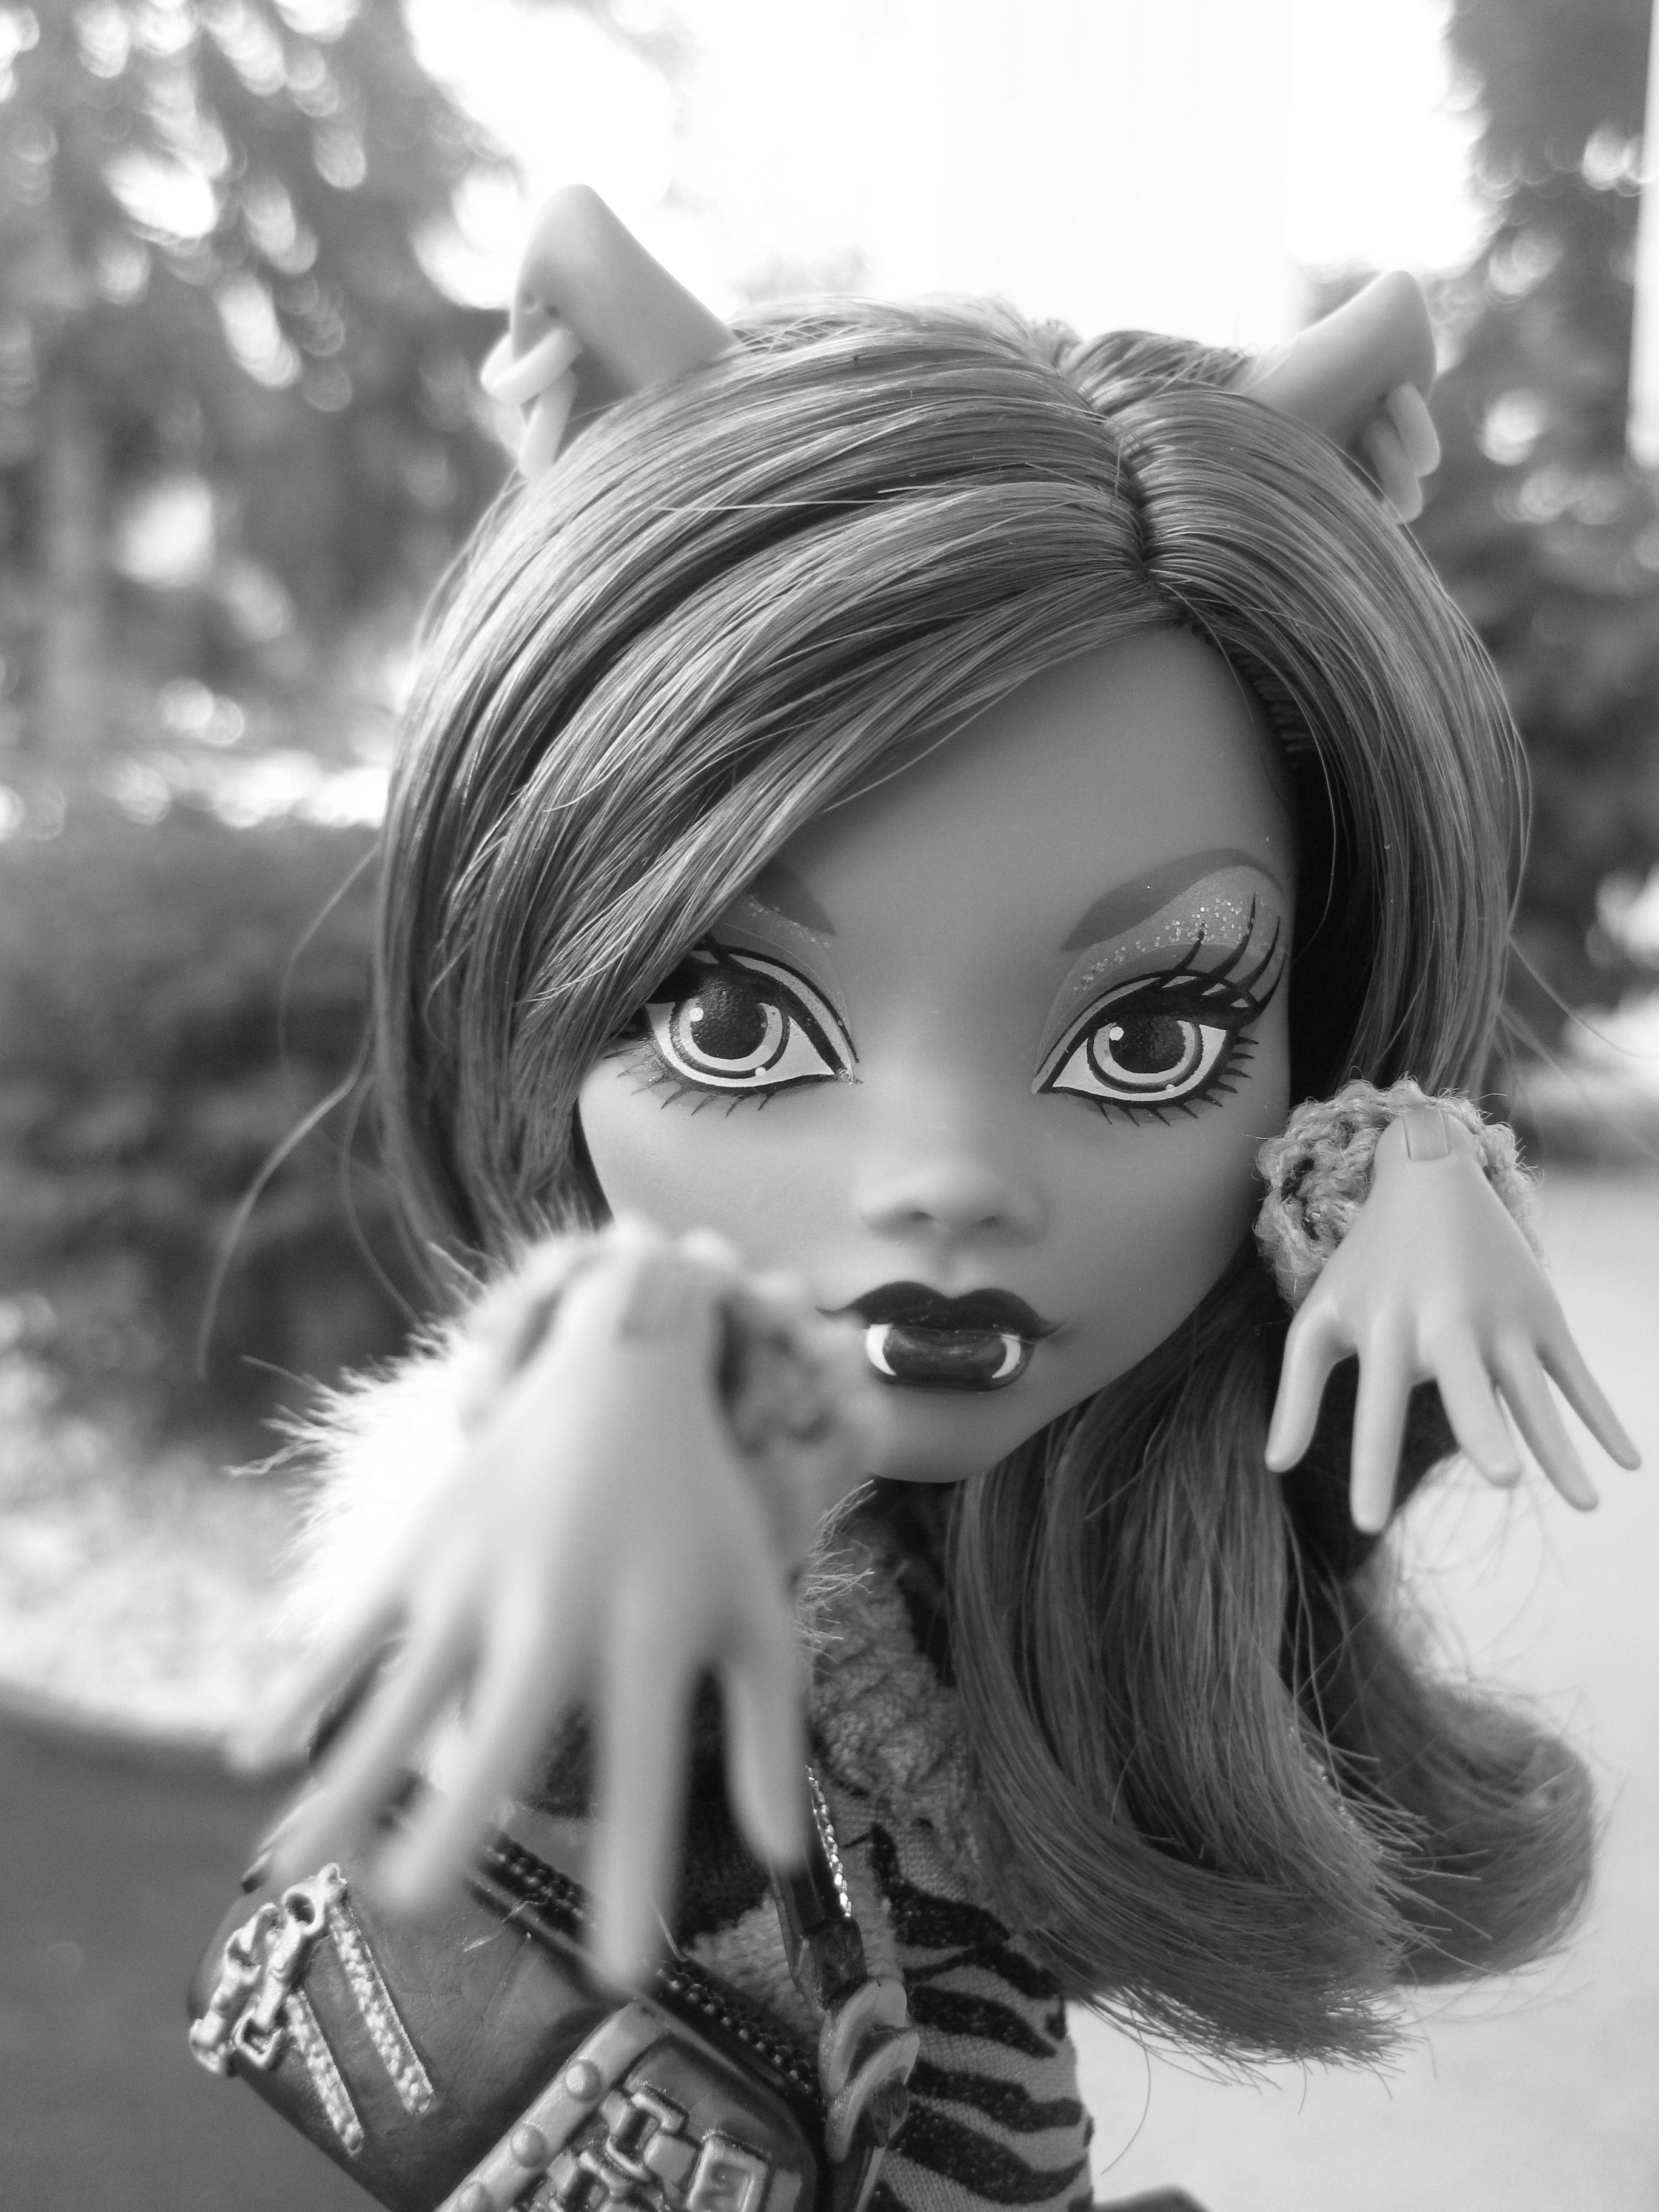 pictures of monster high dolls draculaura doll monster high by krausergirl on deviantart pictures monster of dolls high